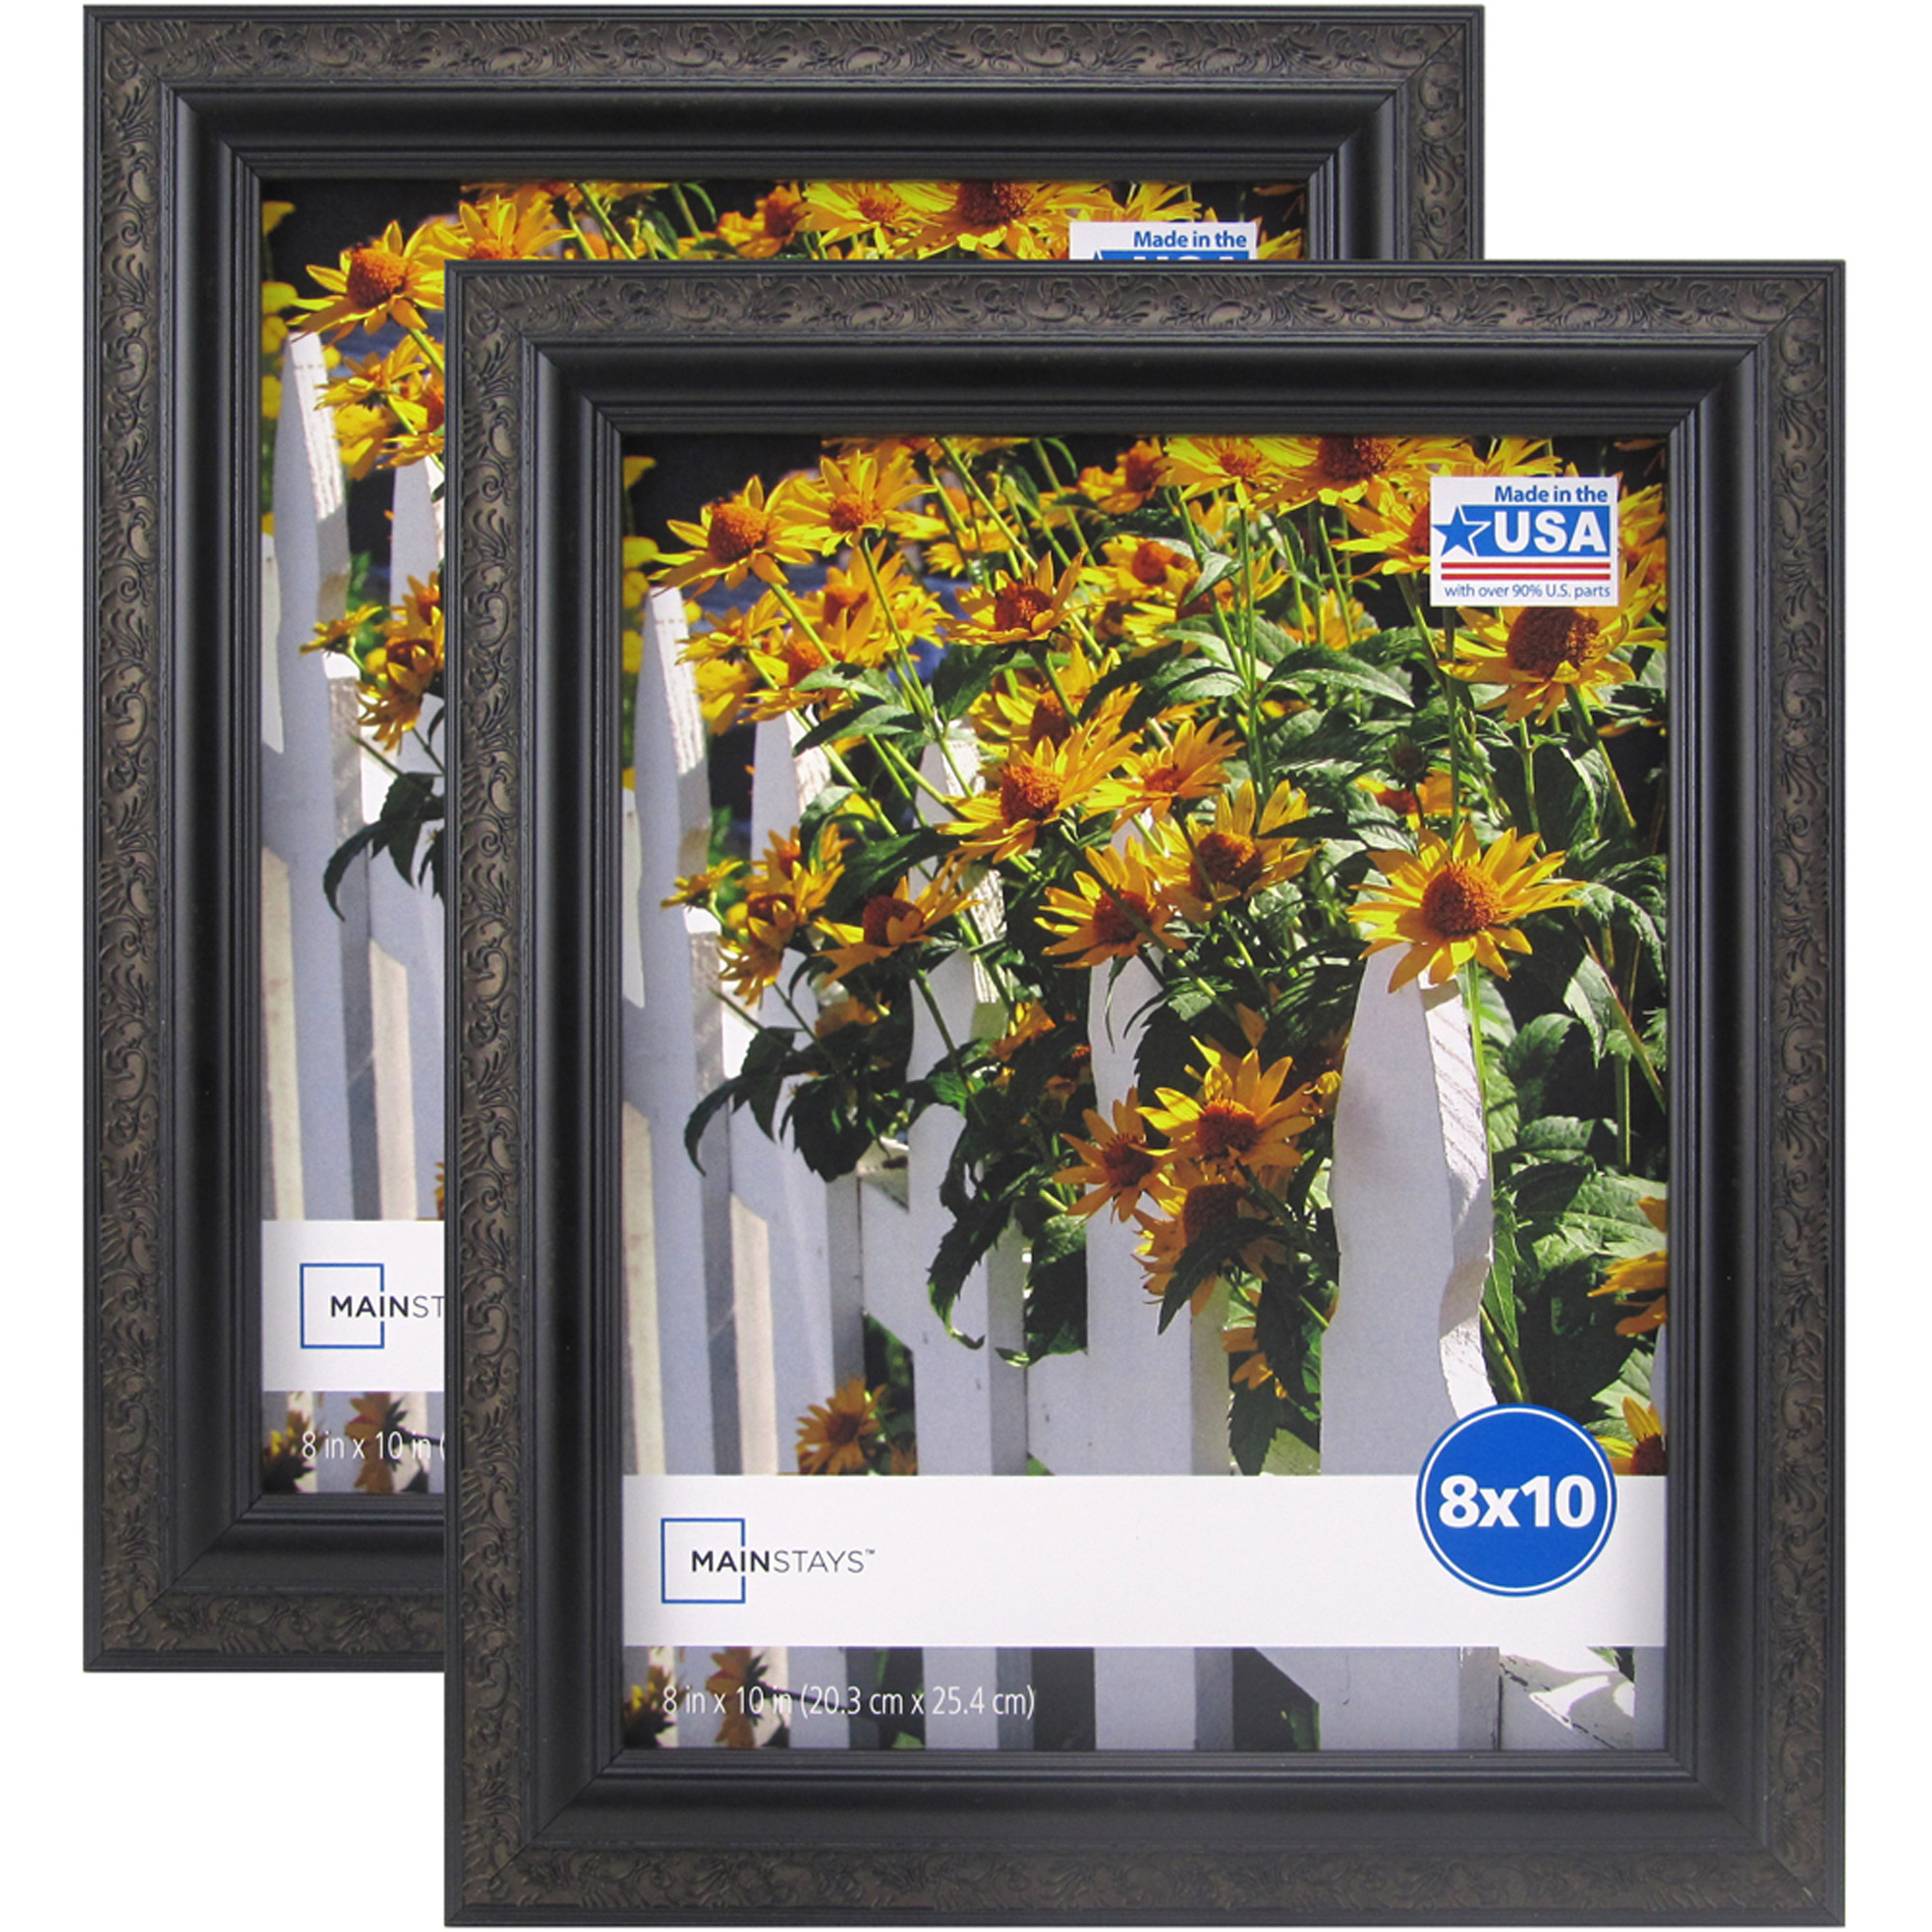 Magnificent 8x10 Ornate Picture Frames Gift - Ideas de Marcos ...